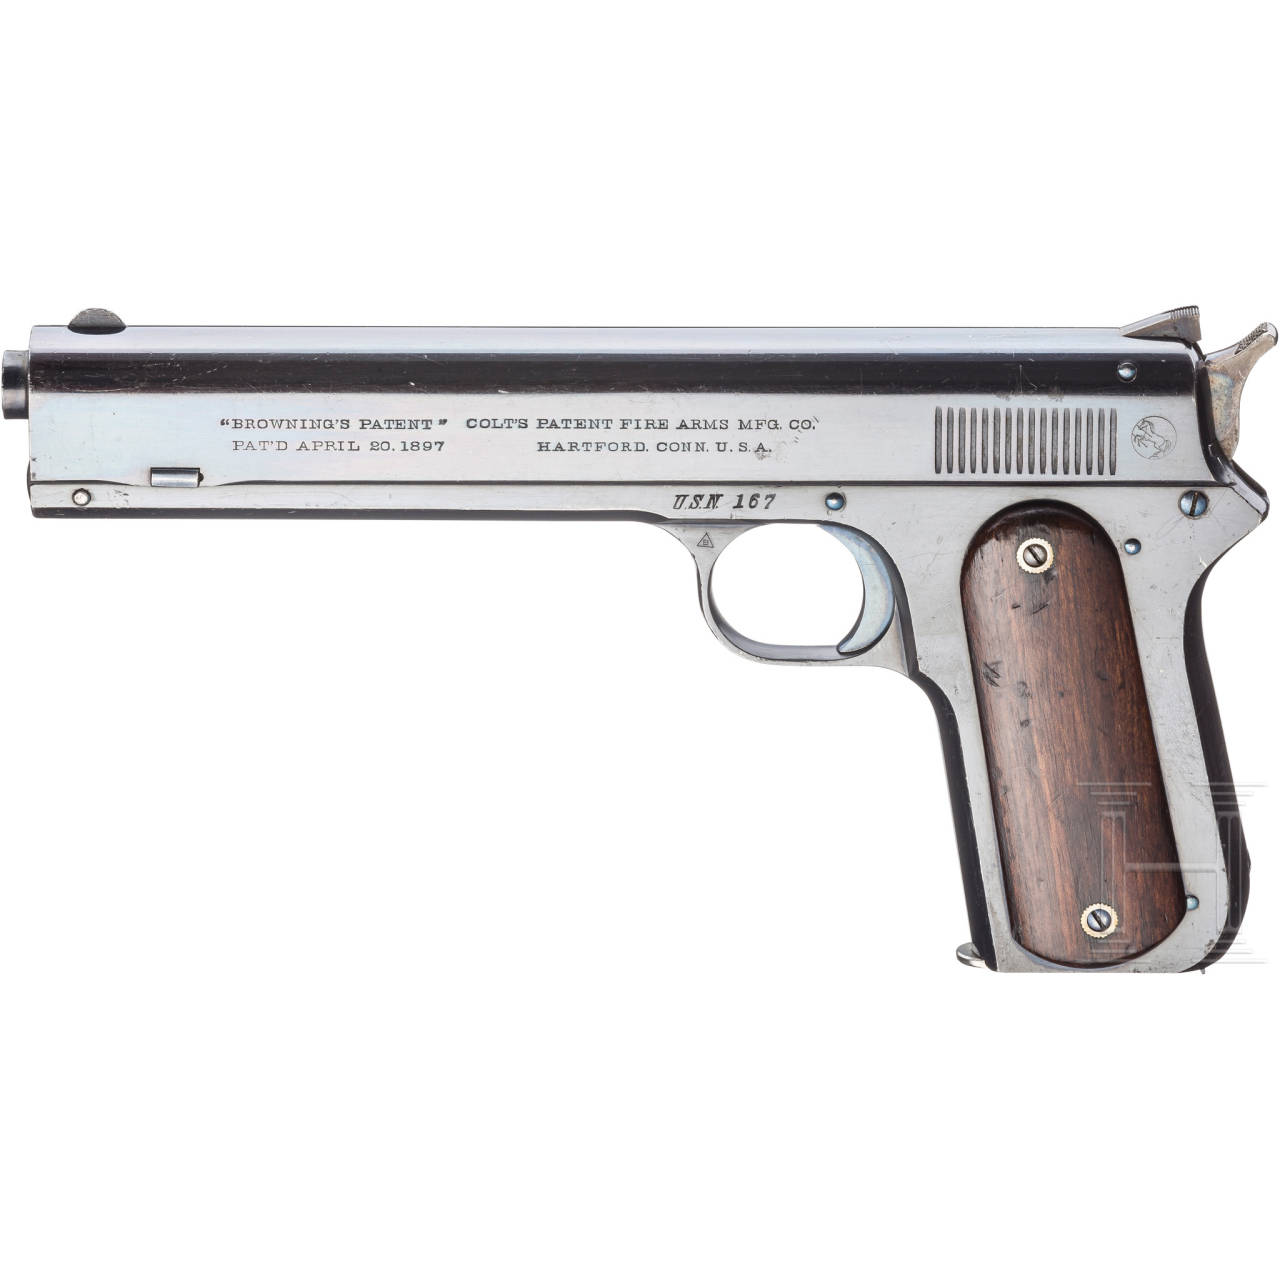 Colt Mod. 1900 Automatic Pistol, Navy Contract, 2. Waffe eines Pärchens